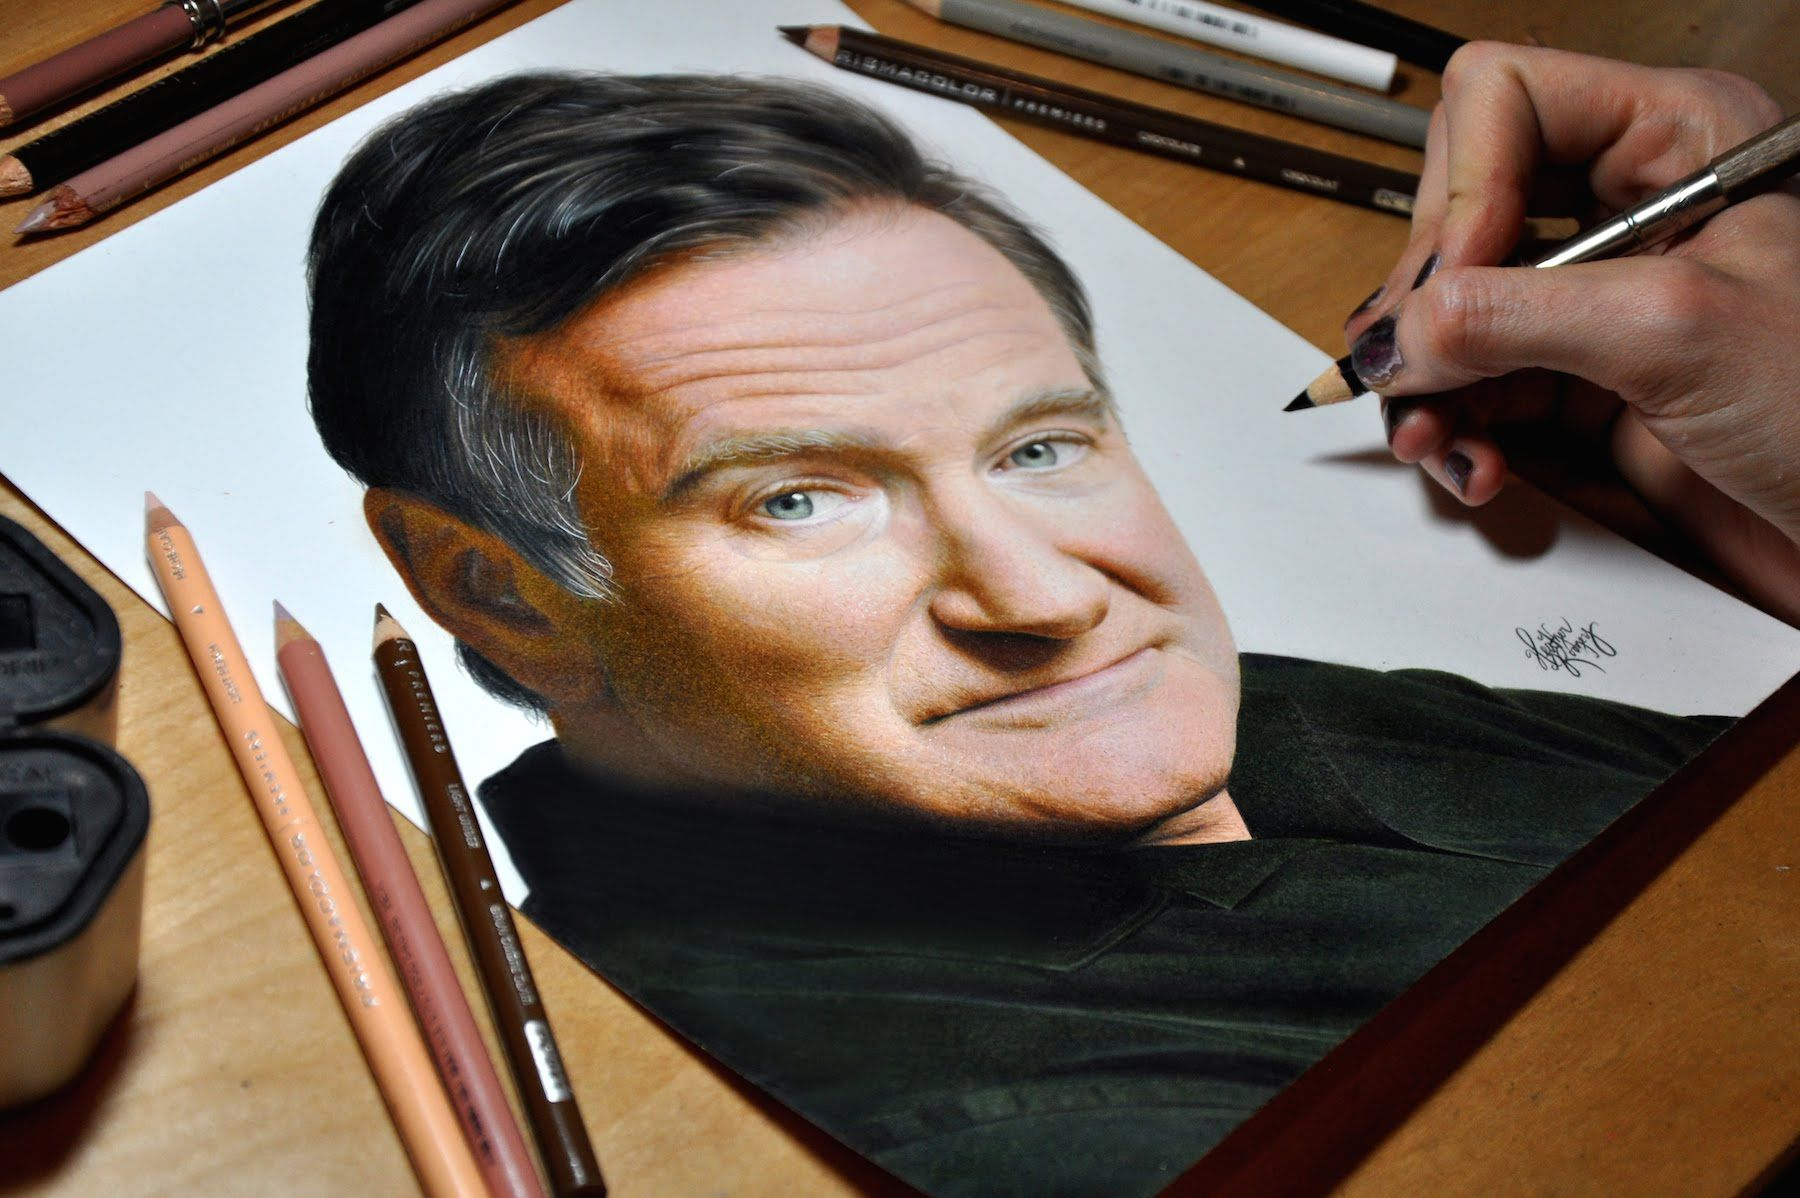 Amaze Drawing Of The Late Robin Williams With Prismacolor Colored